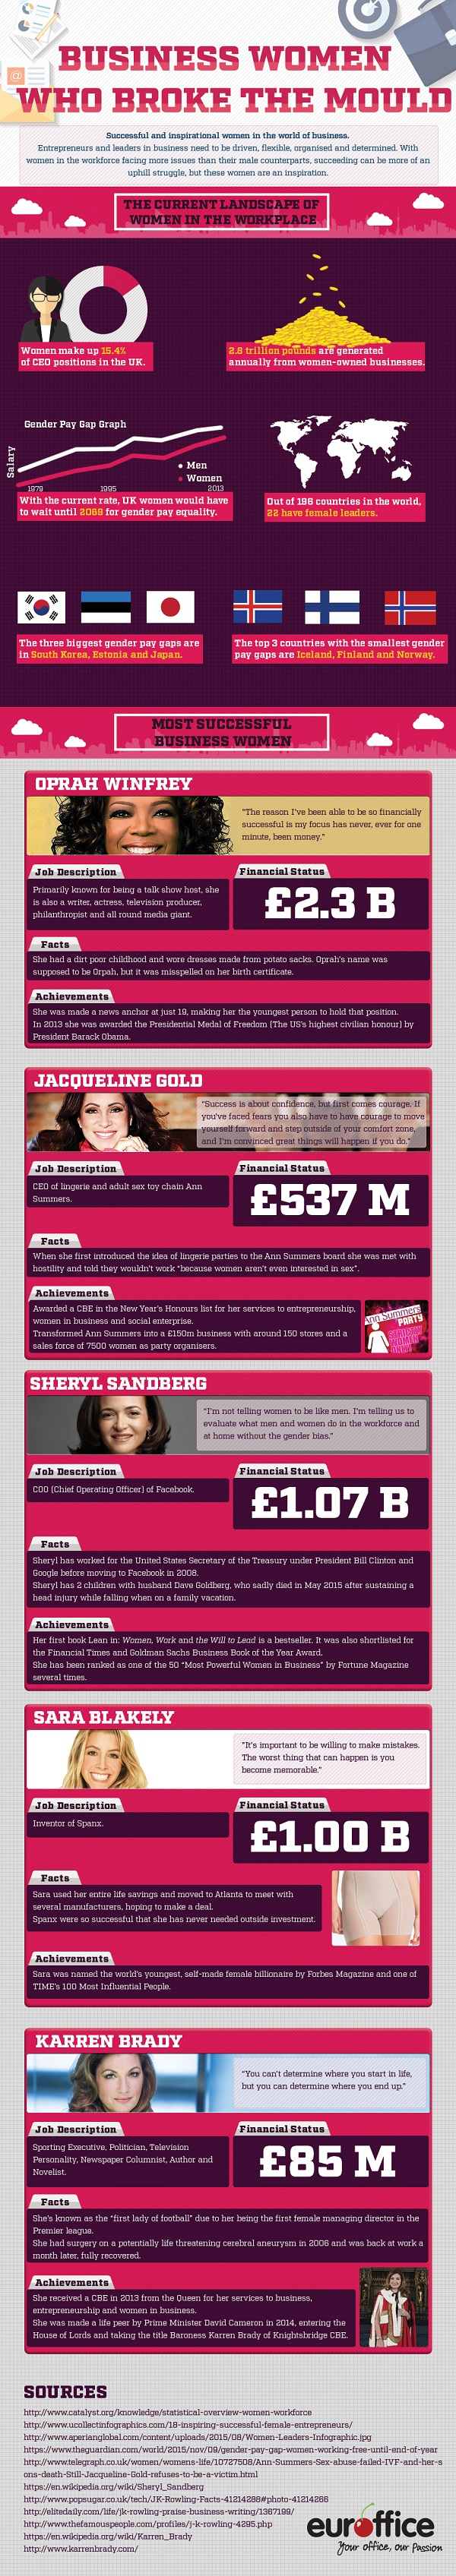 Business Women Who Broke The Mould Infographic